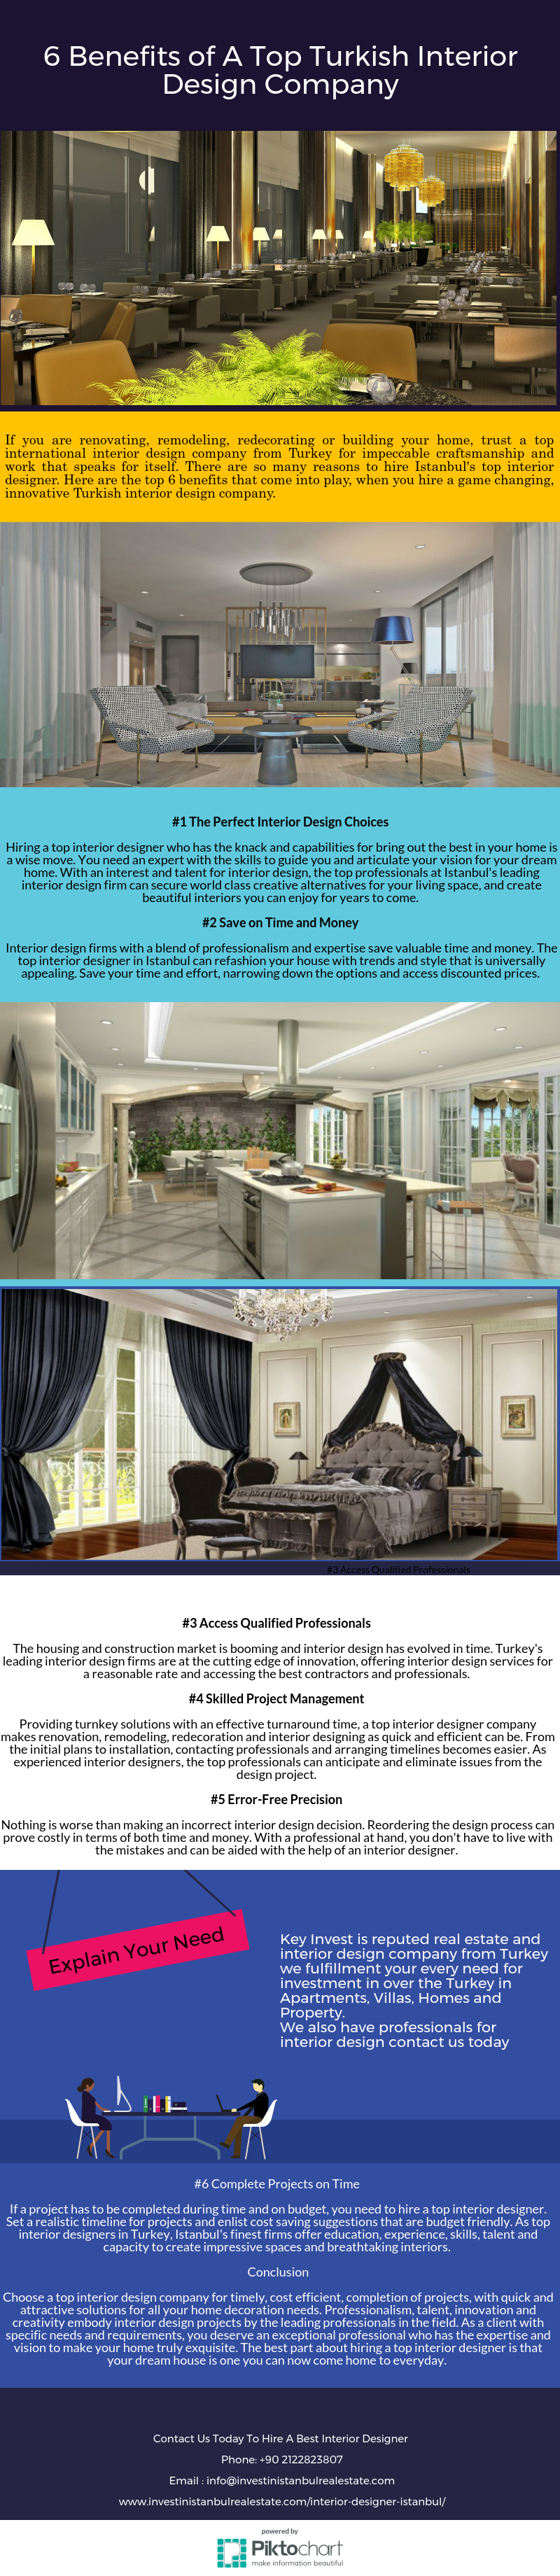 Best Interior Design Firms Remodelling this reputed interior design firm is well established as a market